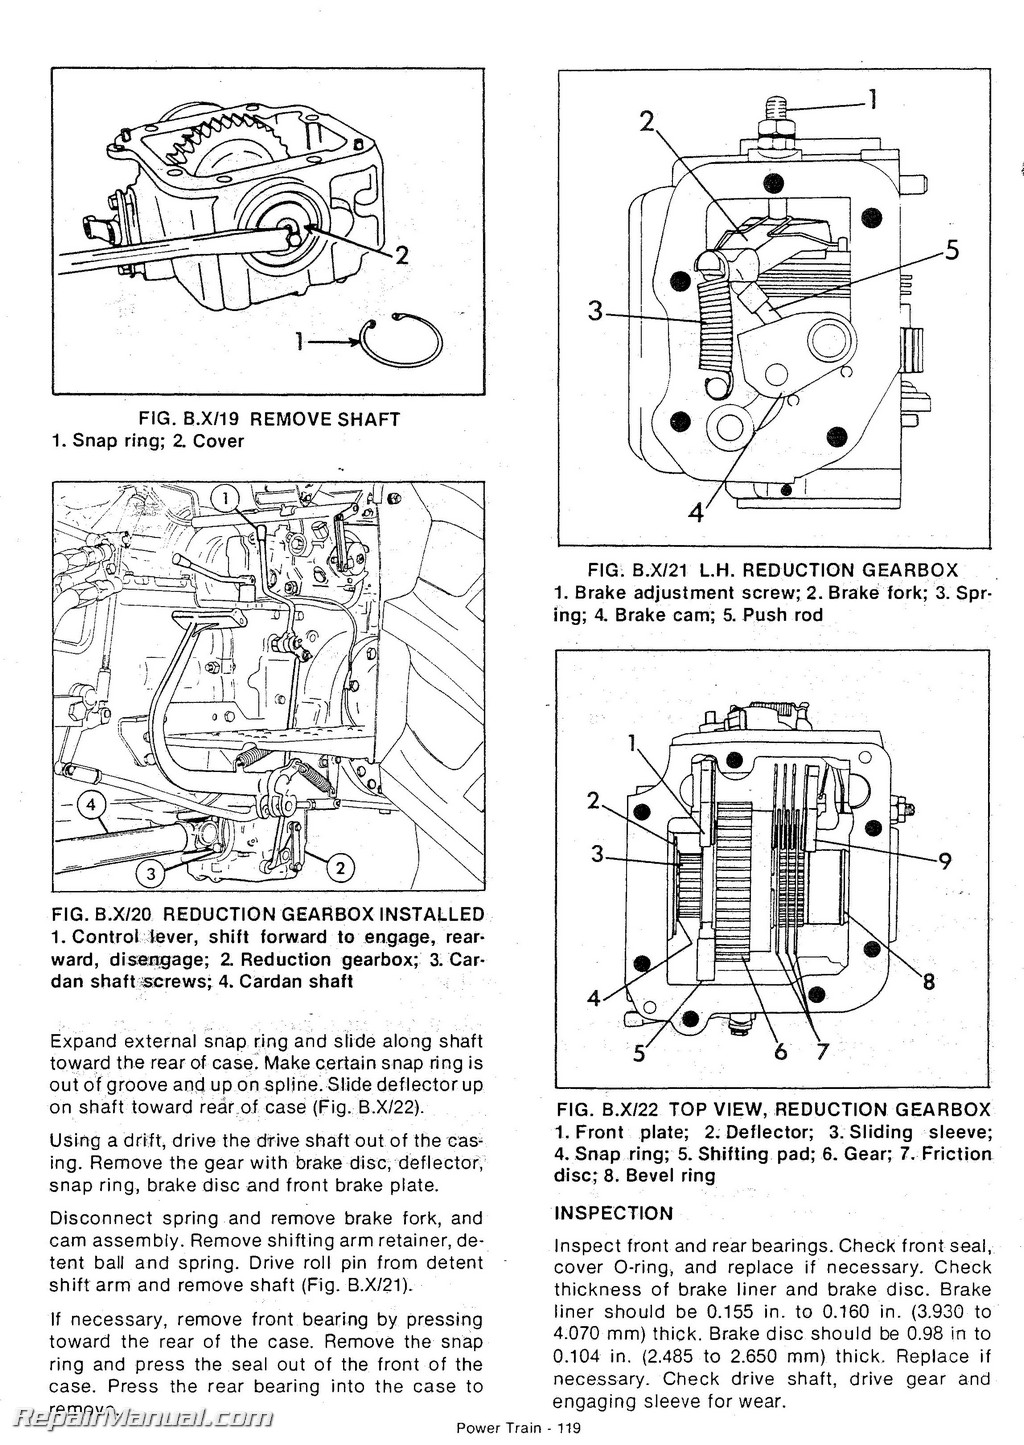 Ih 856 Parts Diagram Trusted Wiring Diagrams Farmall 400 Harness Long 460 Tractor Free Engine Image